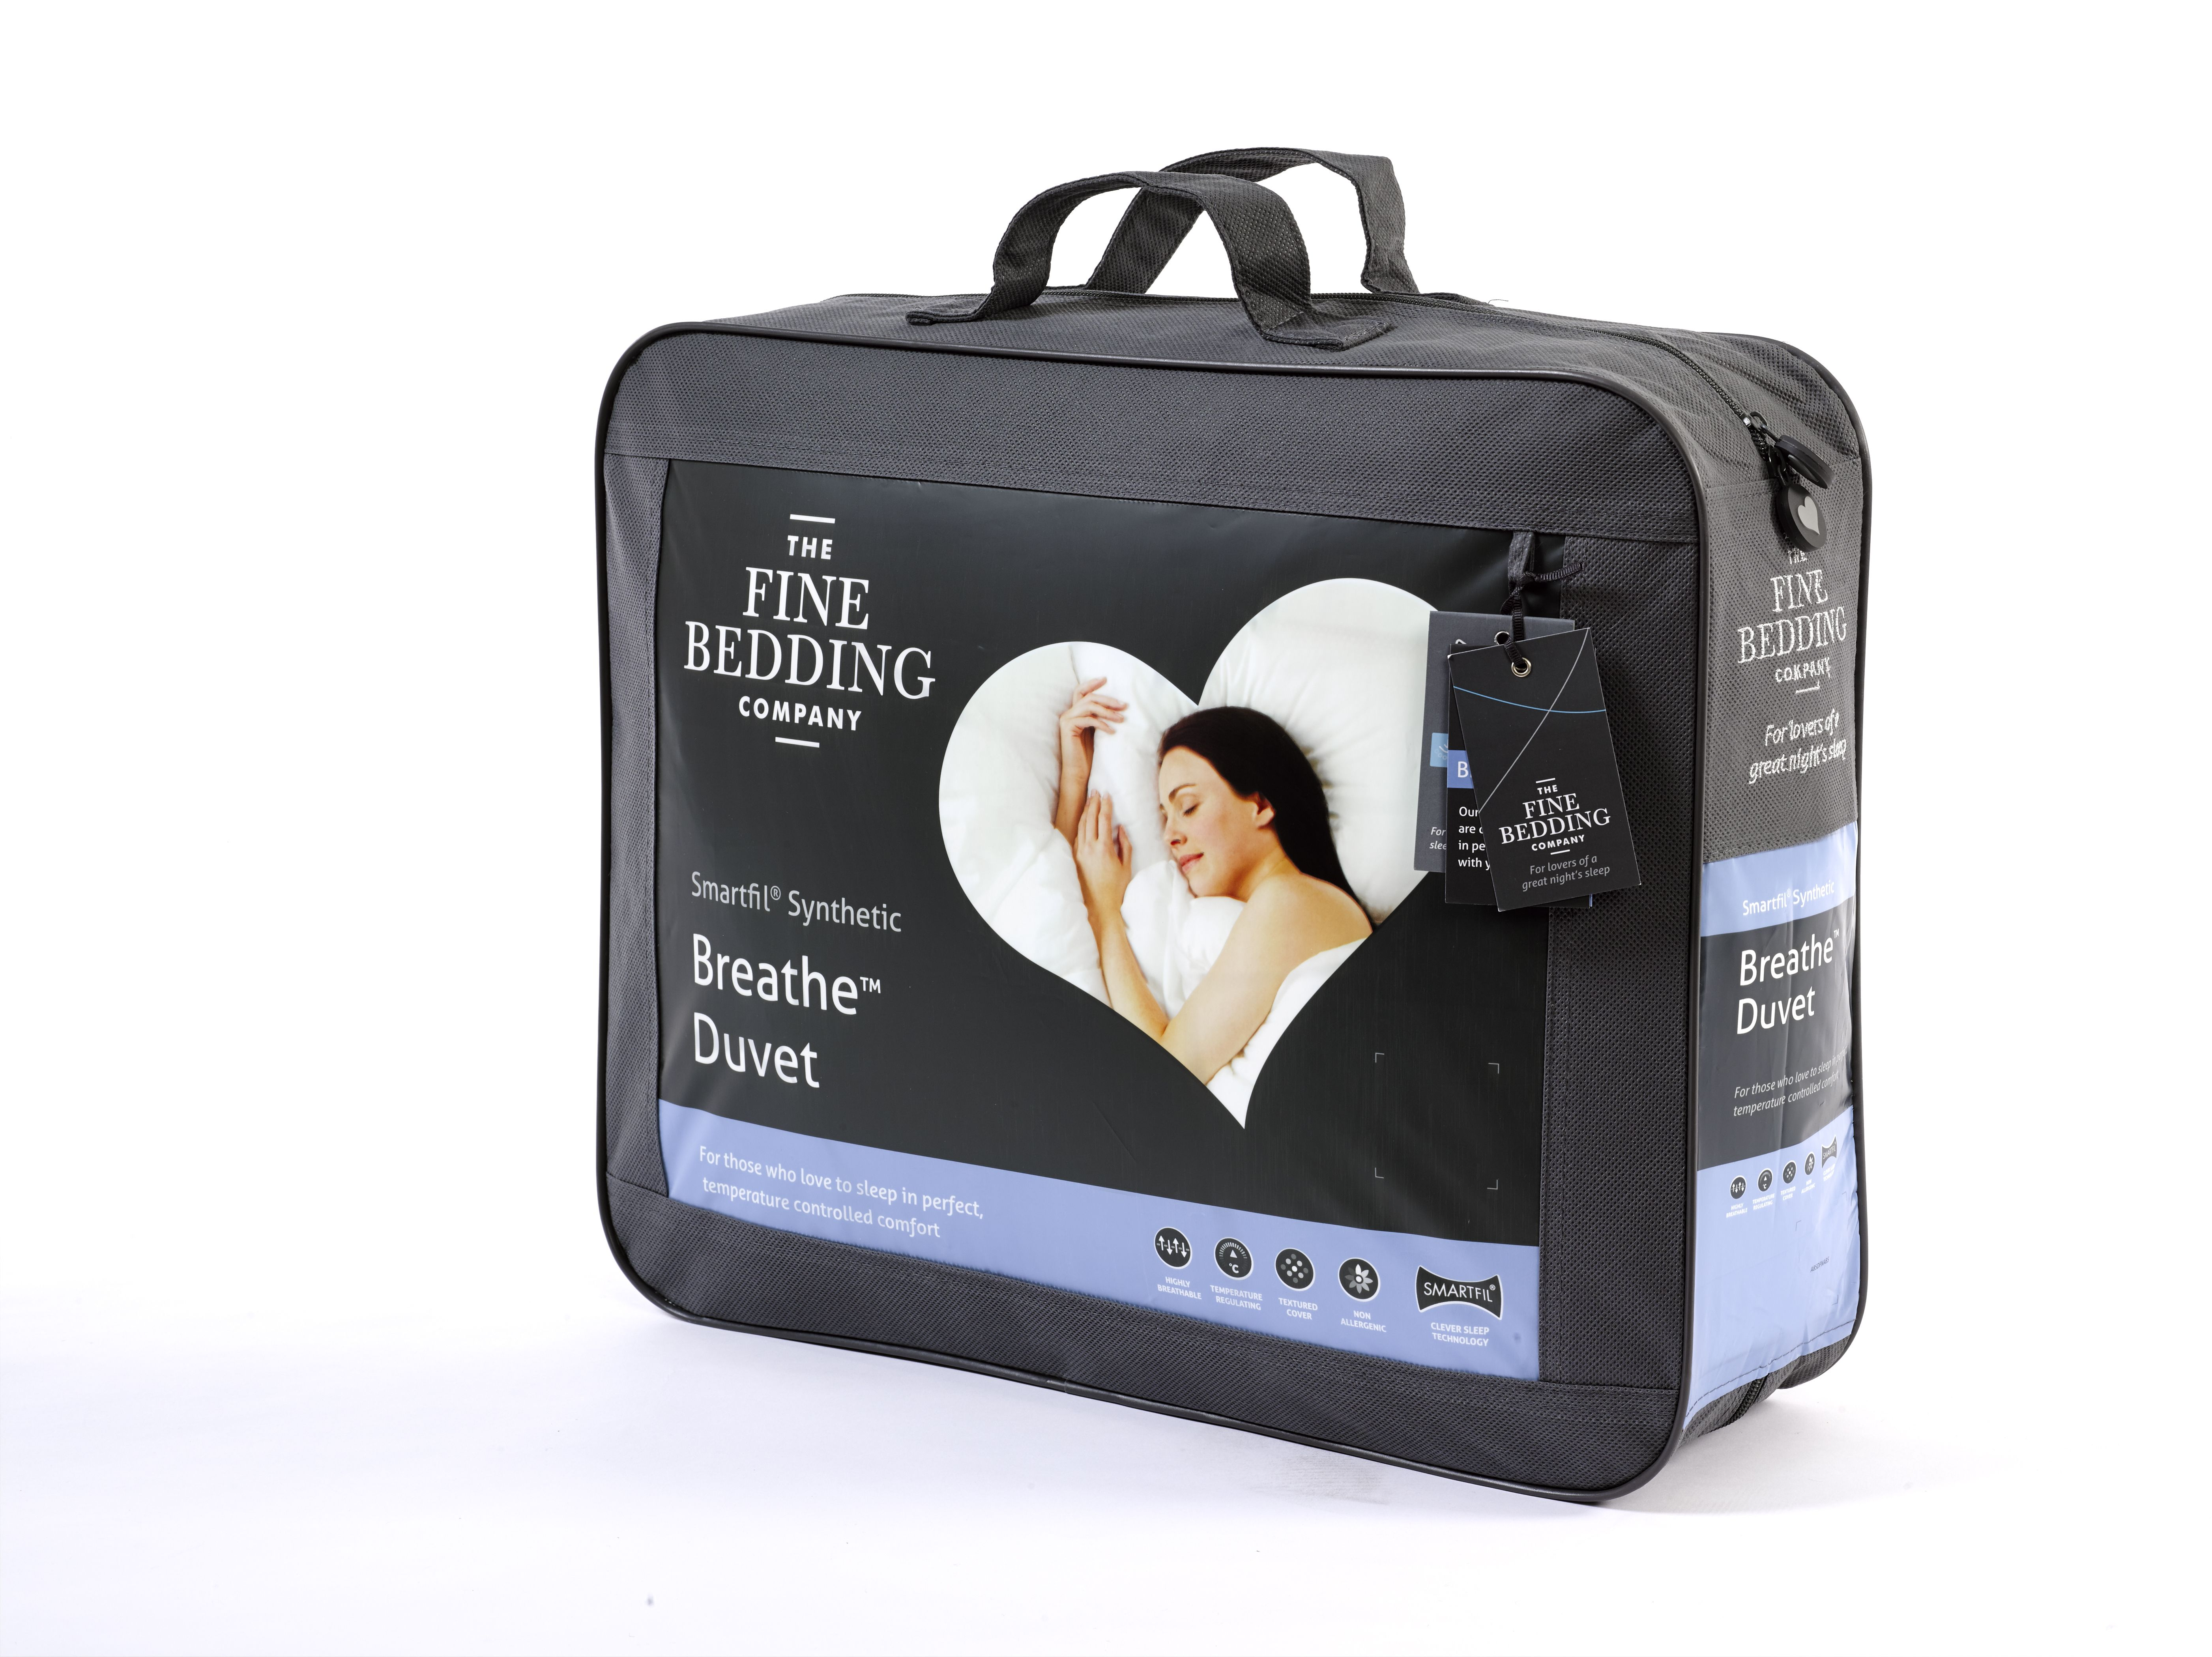 This luxuriously soft Breathe™ duvet by The Fine Bedding